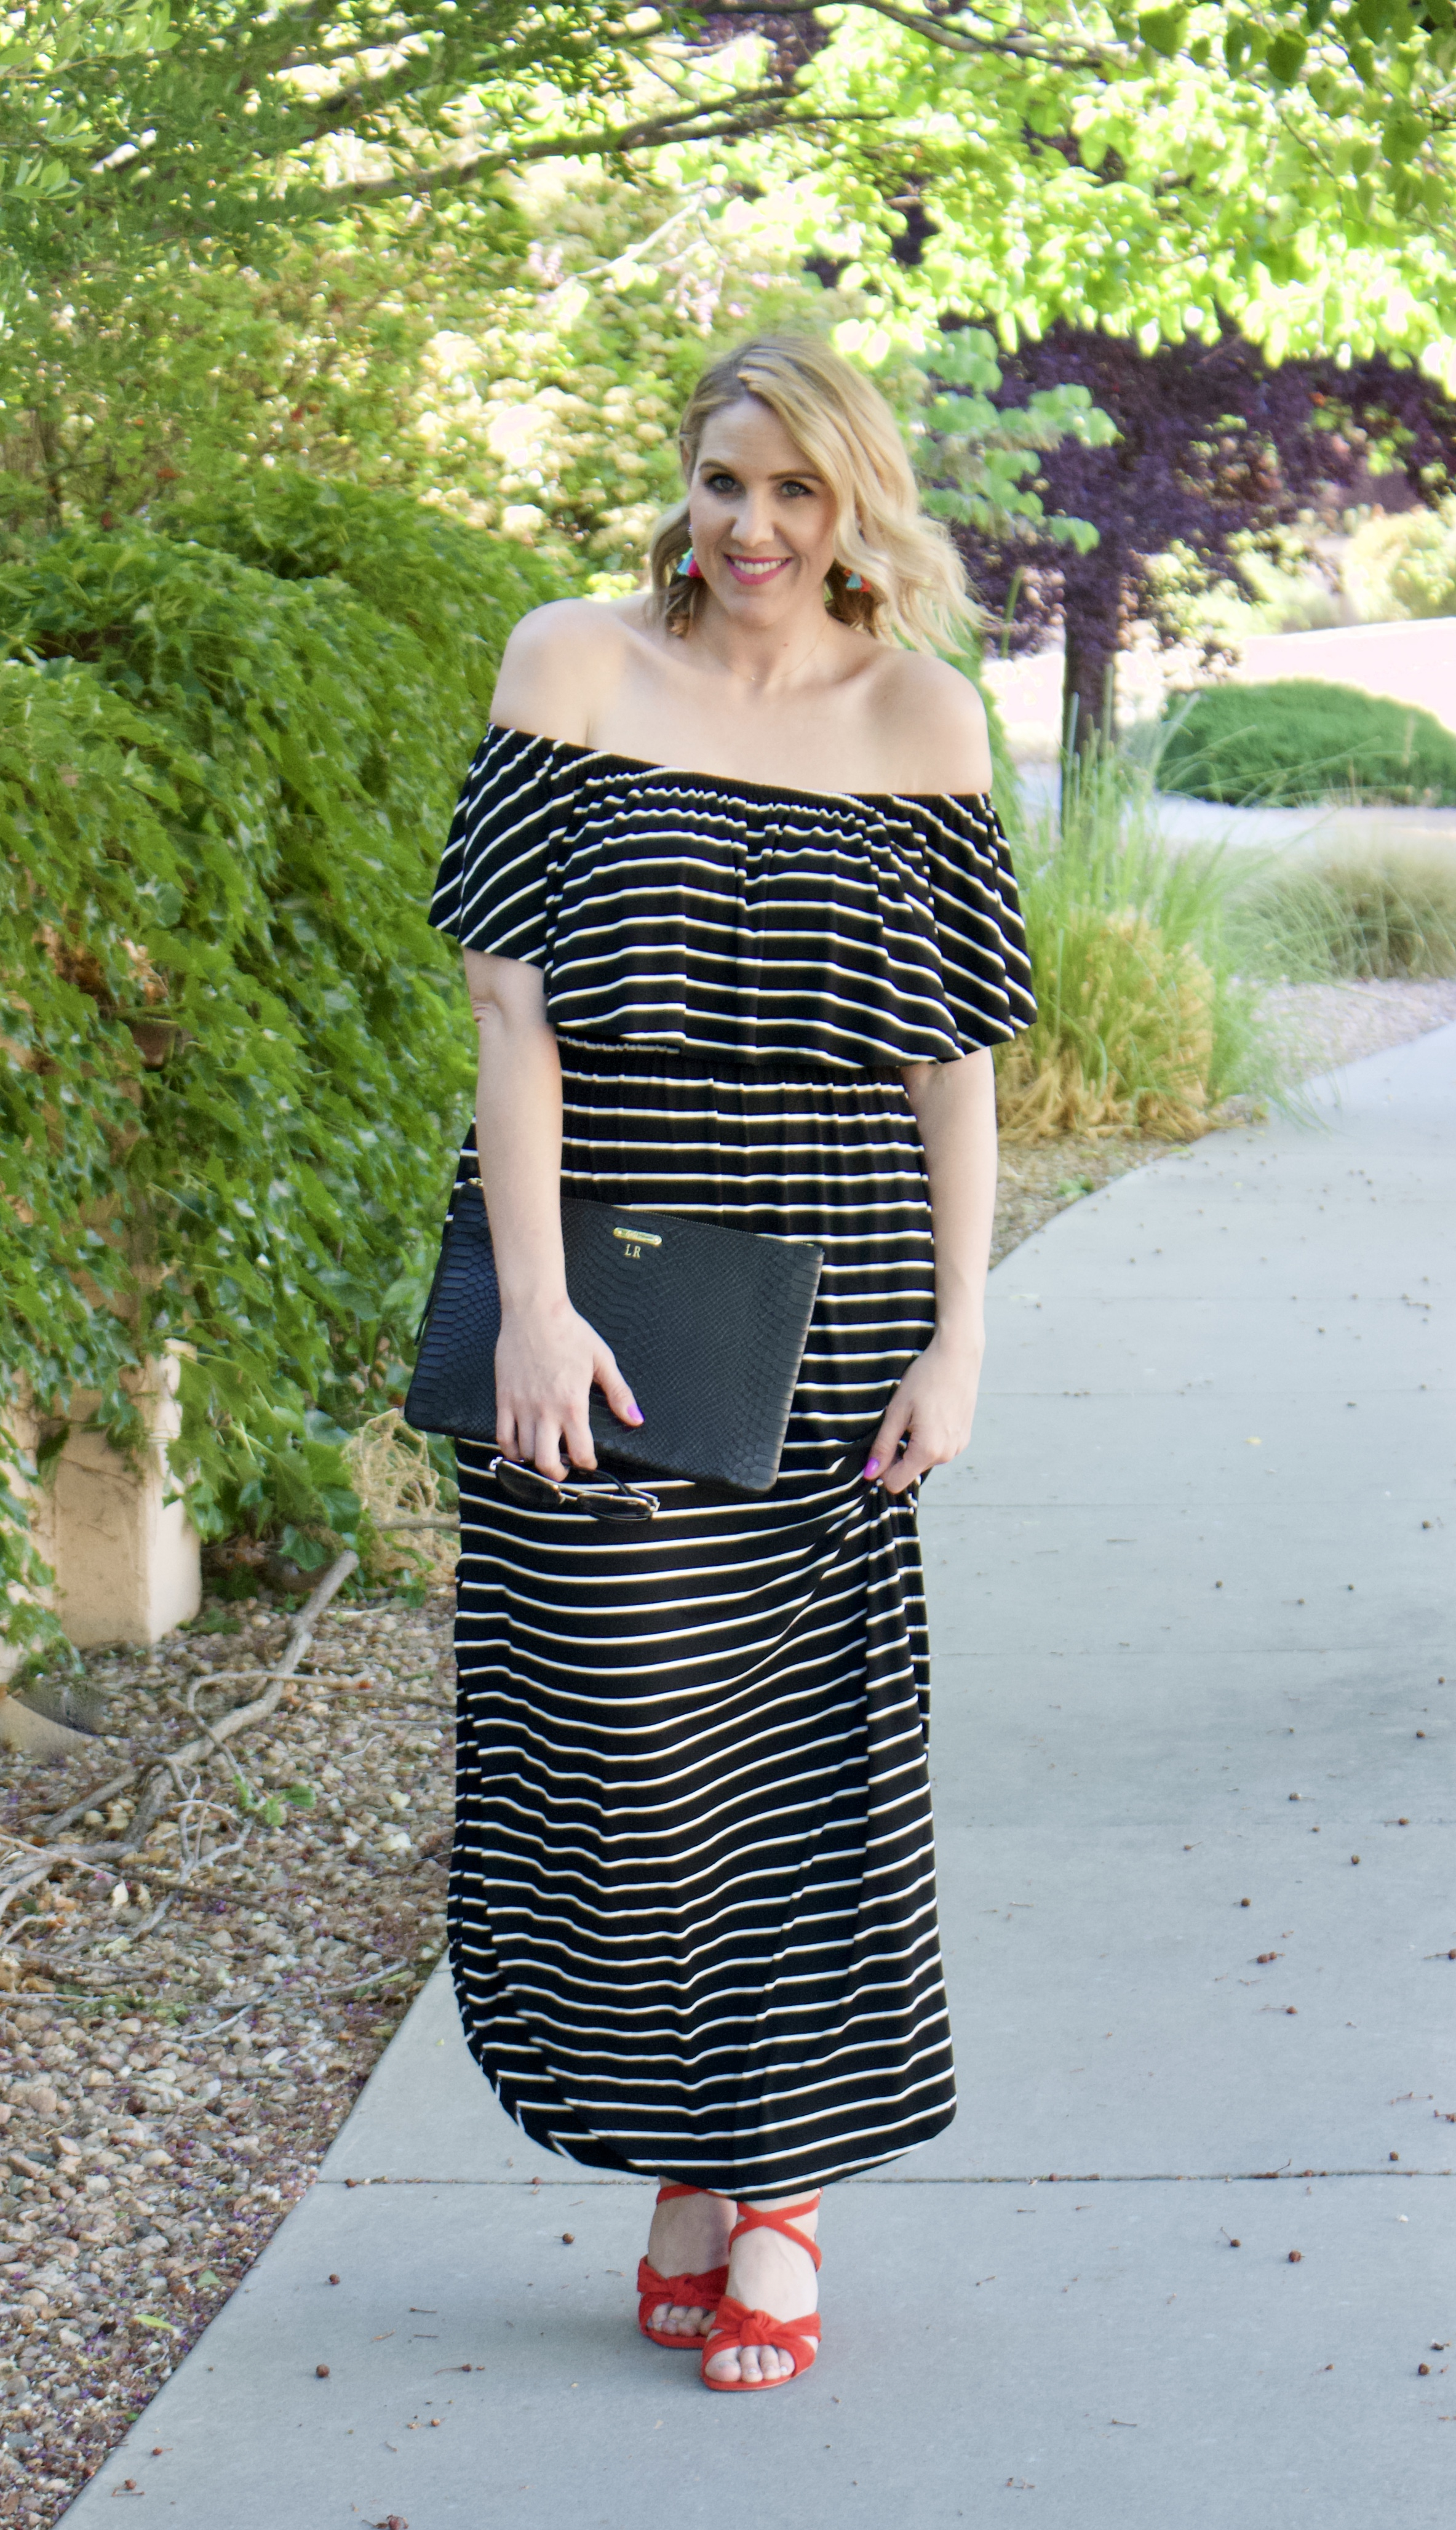 cute maxi dress for summer #summerstyle #fashionbloger #solesociety #giginewyork